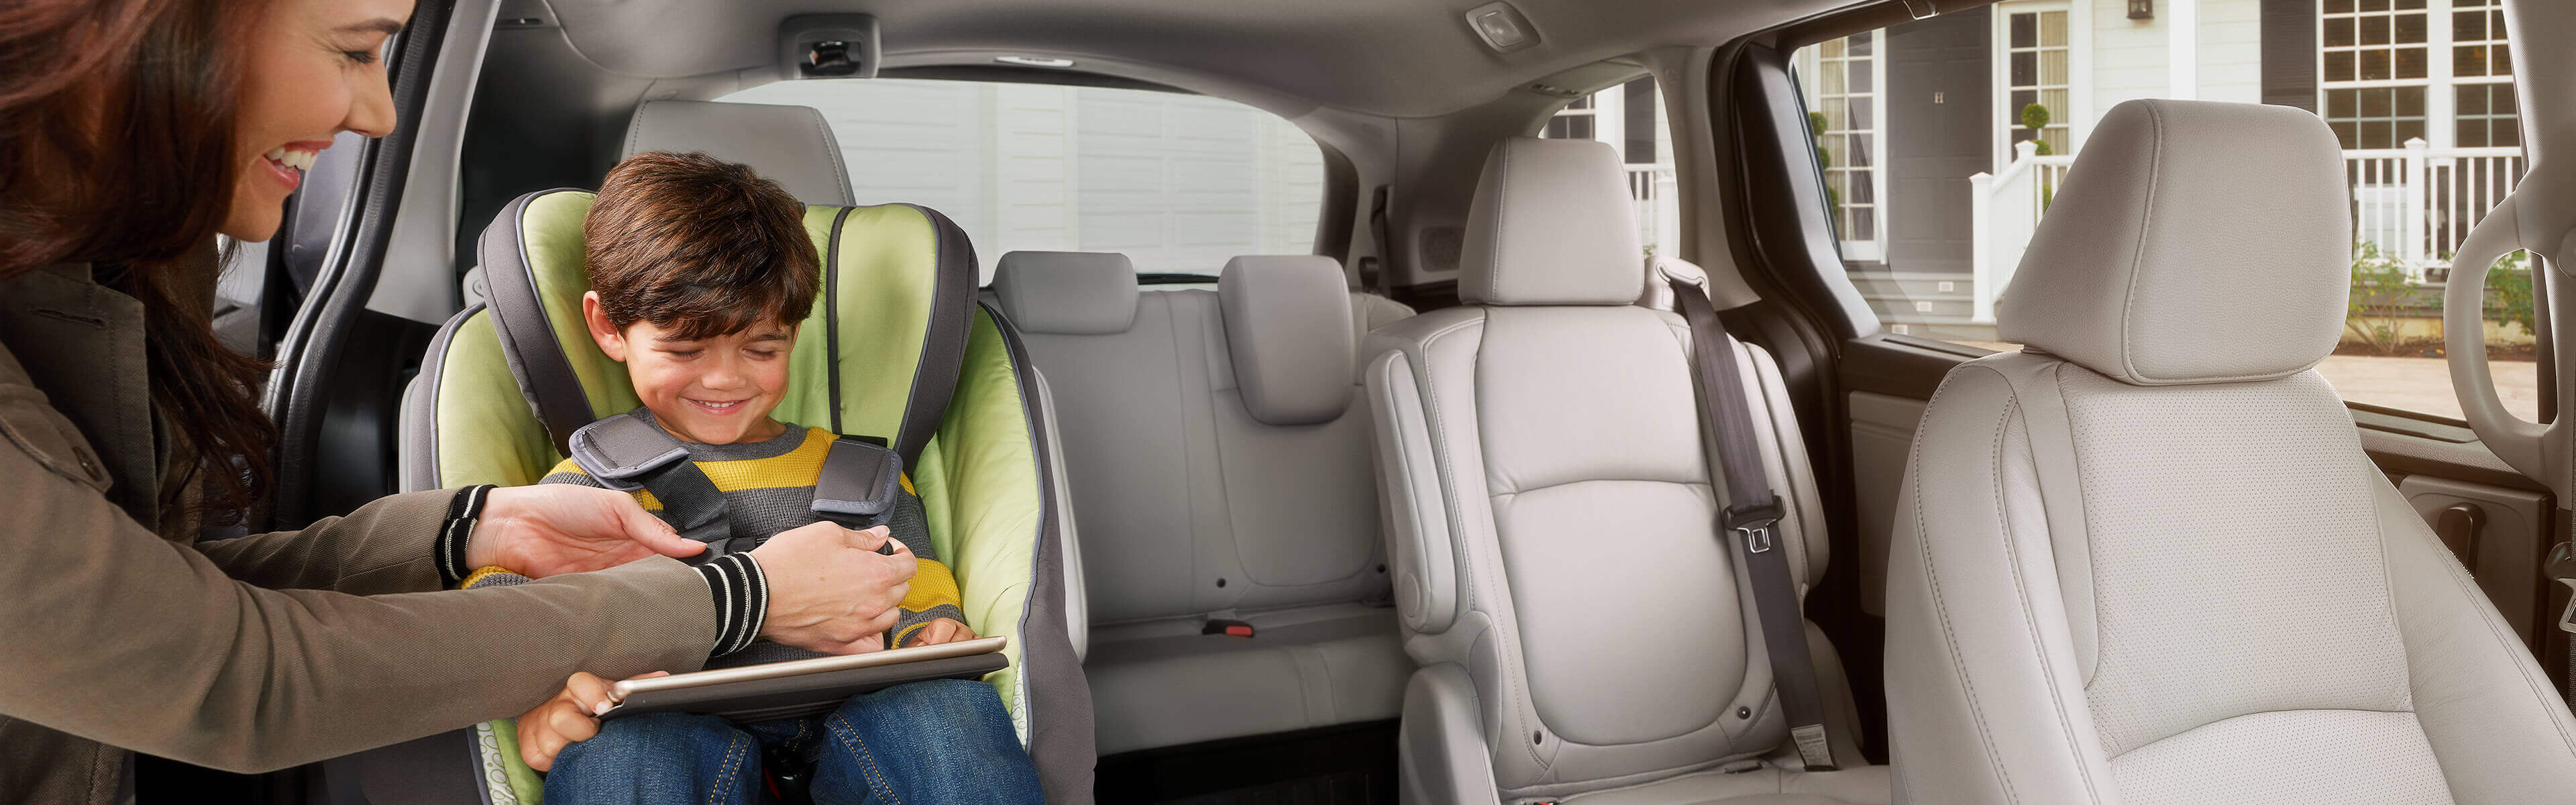 Image of 2020 Honda Odyssey 2nd-row interior.